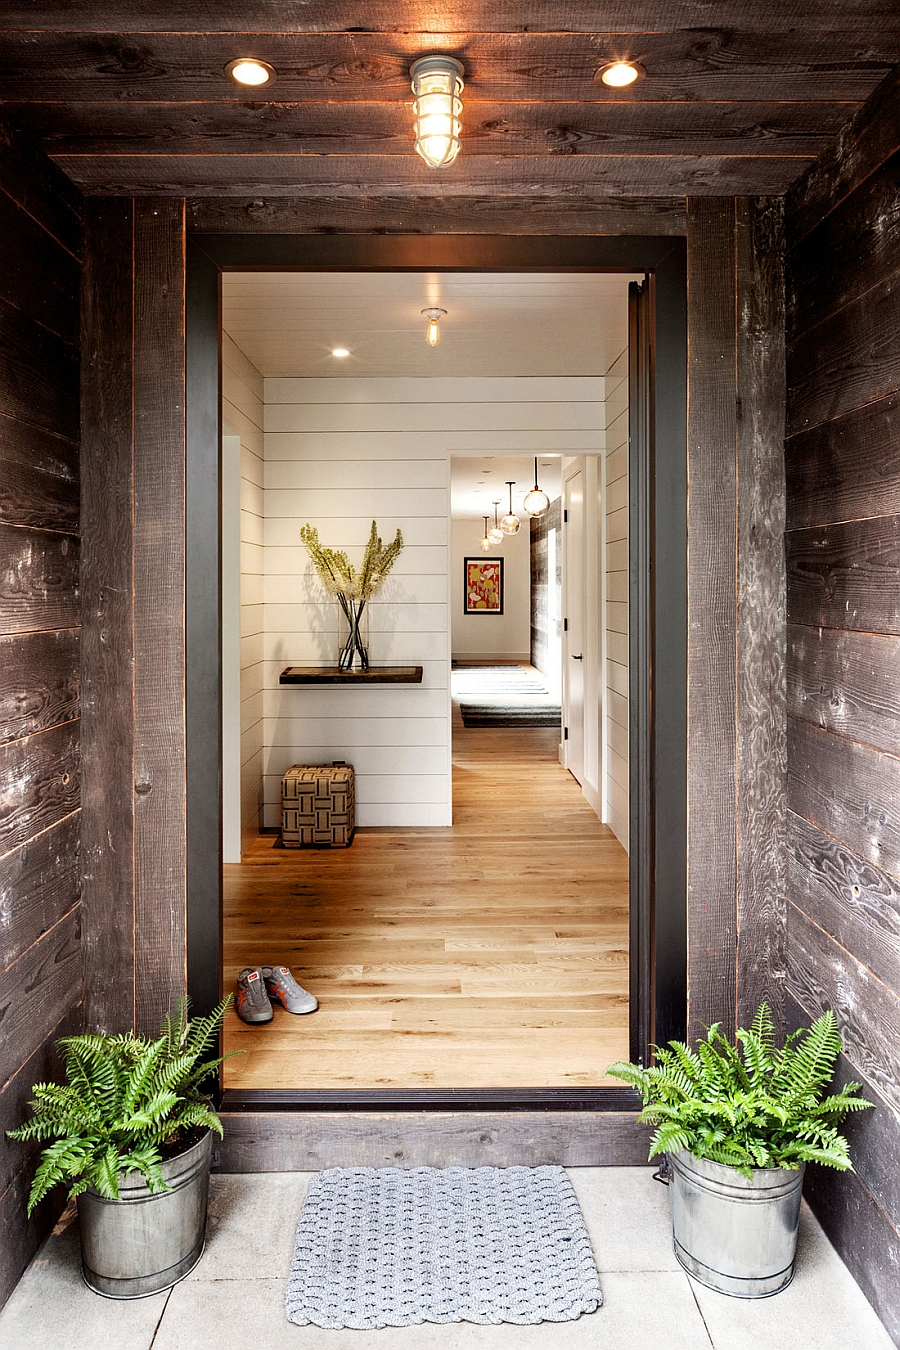 Idyllic Portland Home Blends Industrial and MidCentury Styles